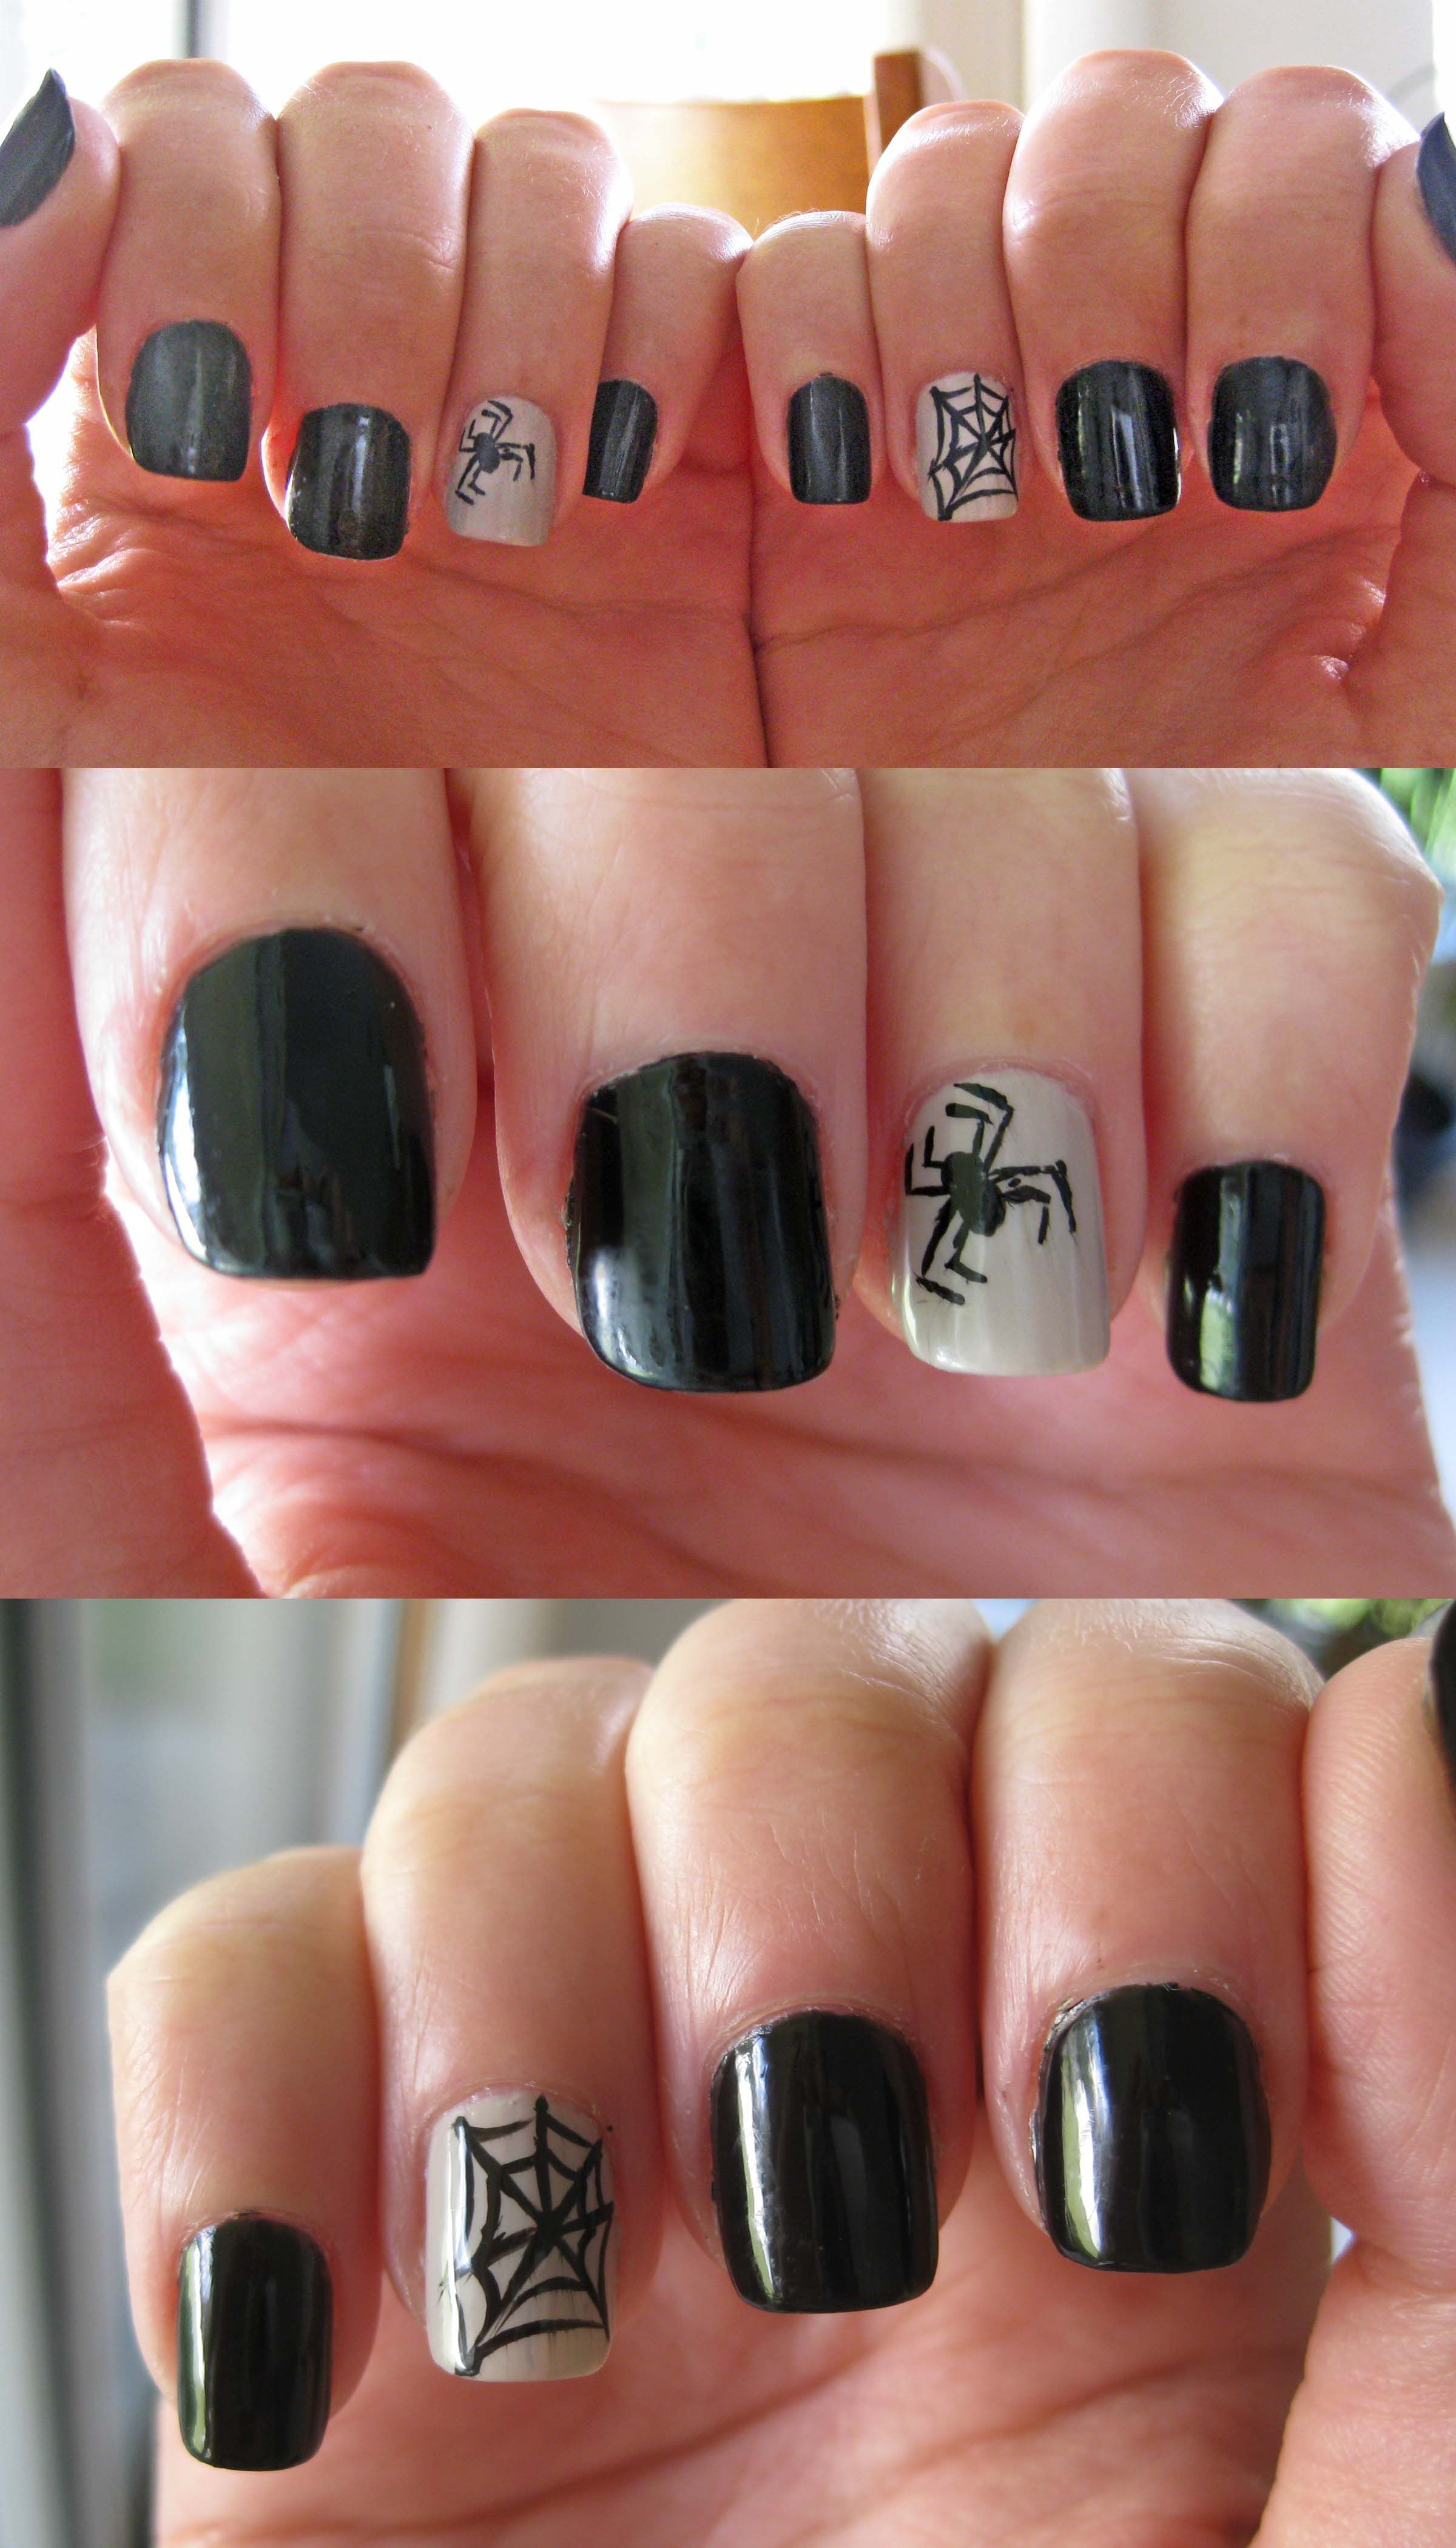 Spider & spiderweb nails for Halloween | Fabulous nails ...